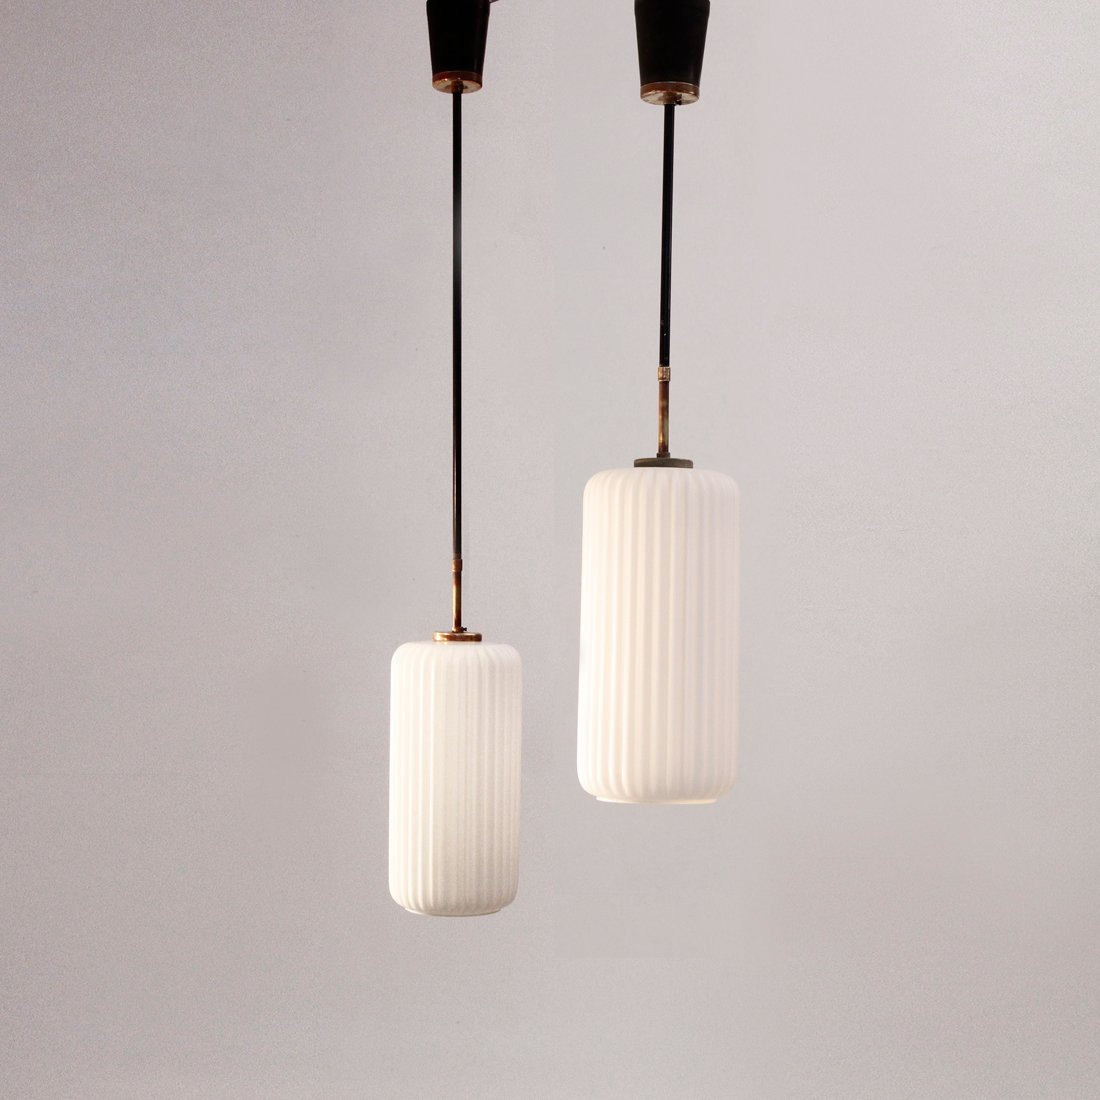 Vintage italian pendant lamps with opaline glass 1950s set of 2 for sale at pamono - Italian pendant lights ...